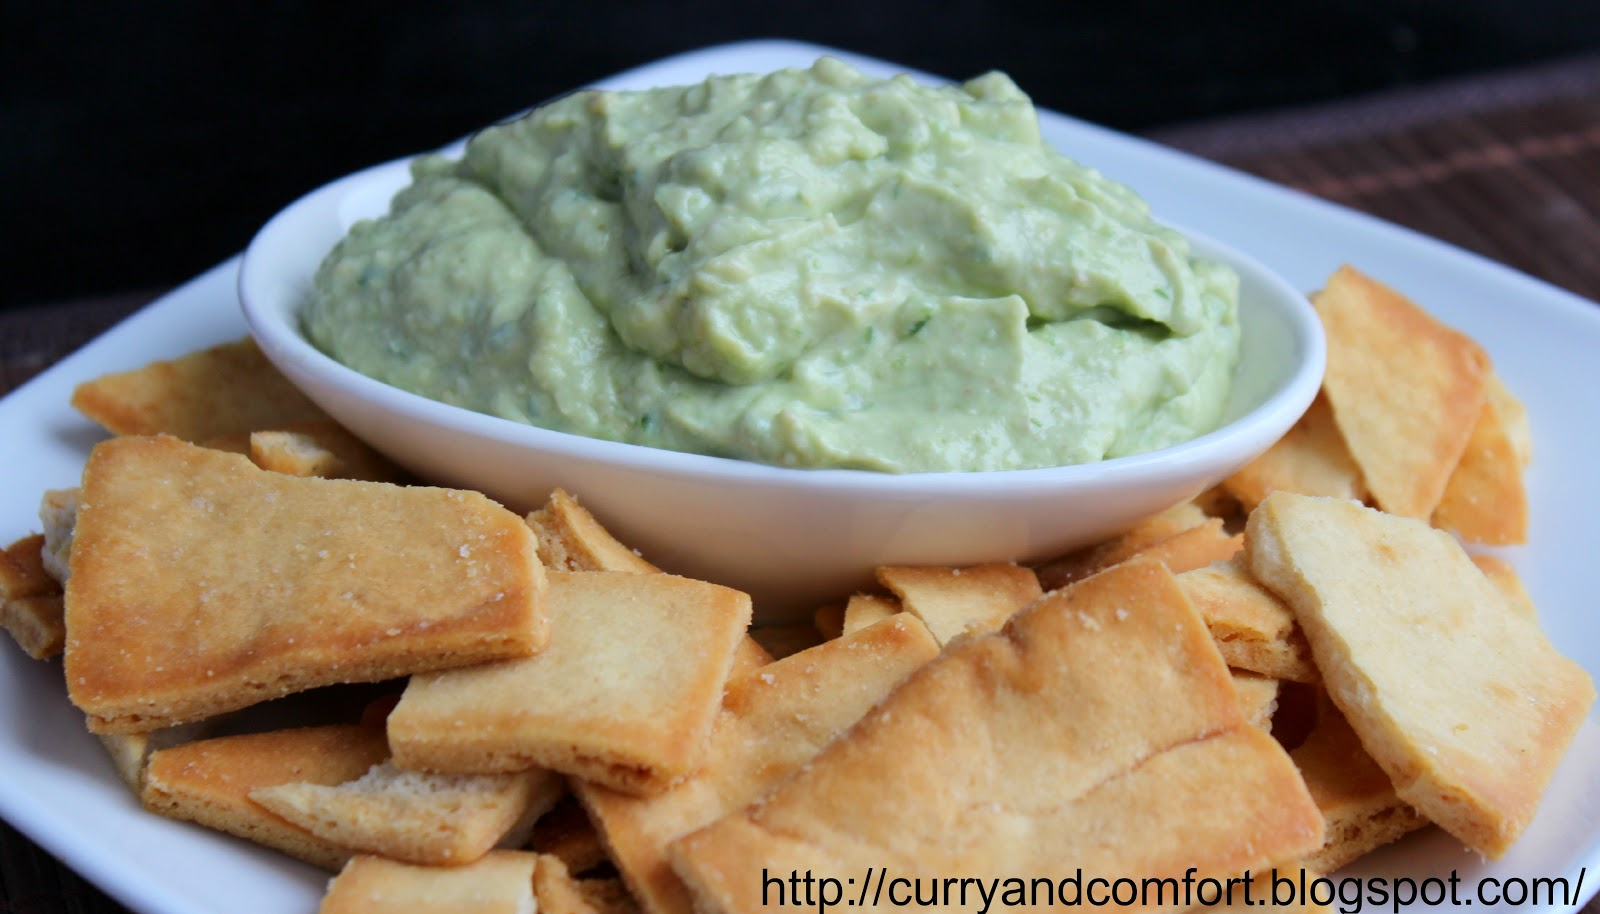 Spicy and Creamy Guacamole Dip